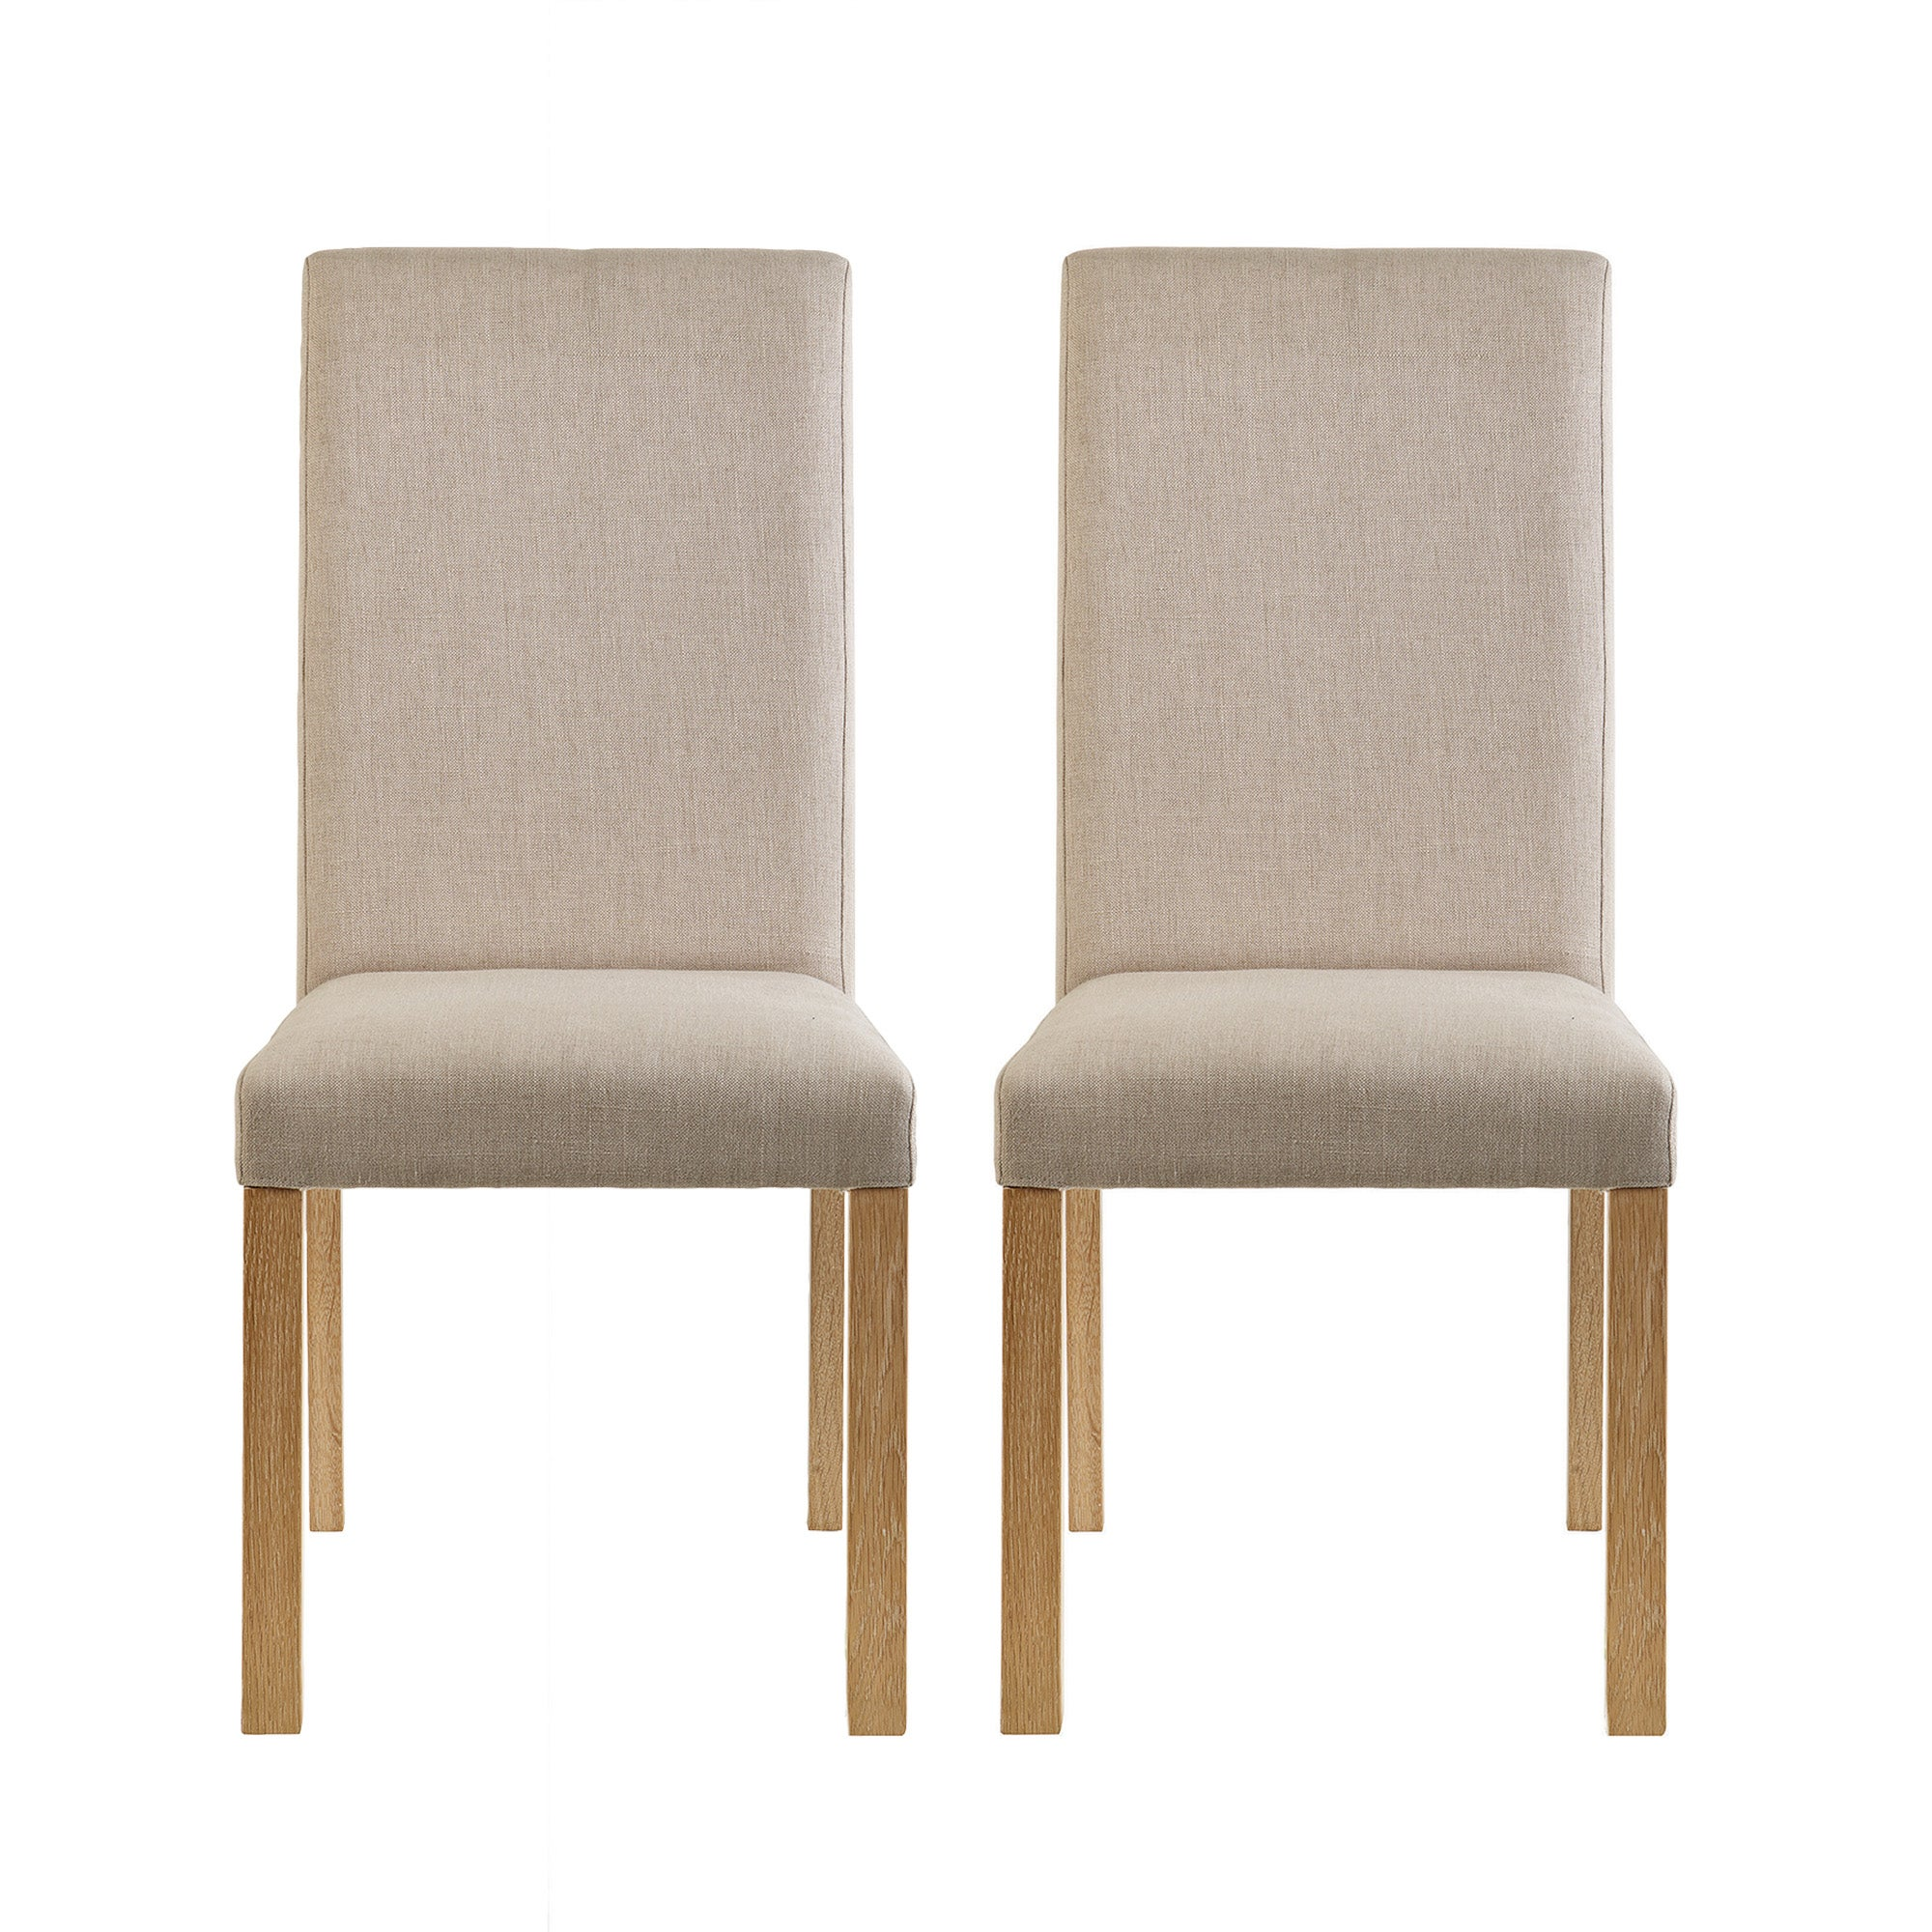 Knox Washed Oak Pair of Upholstered Chairs